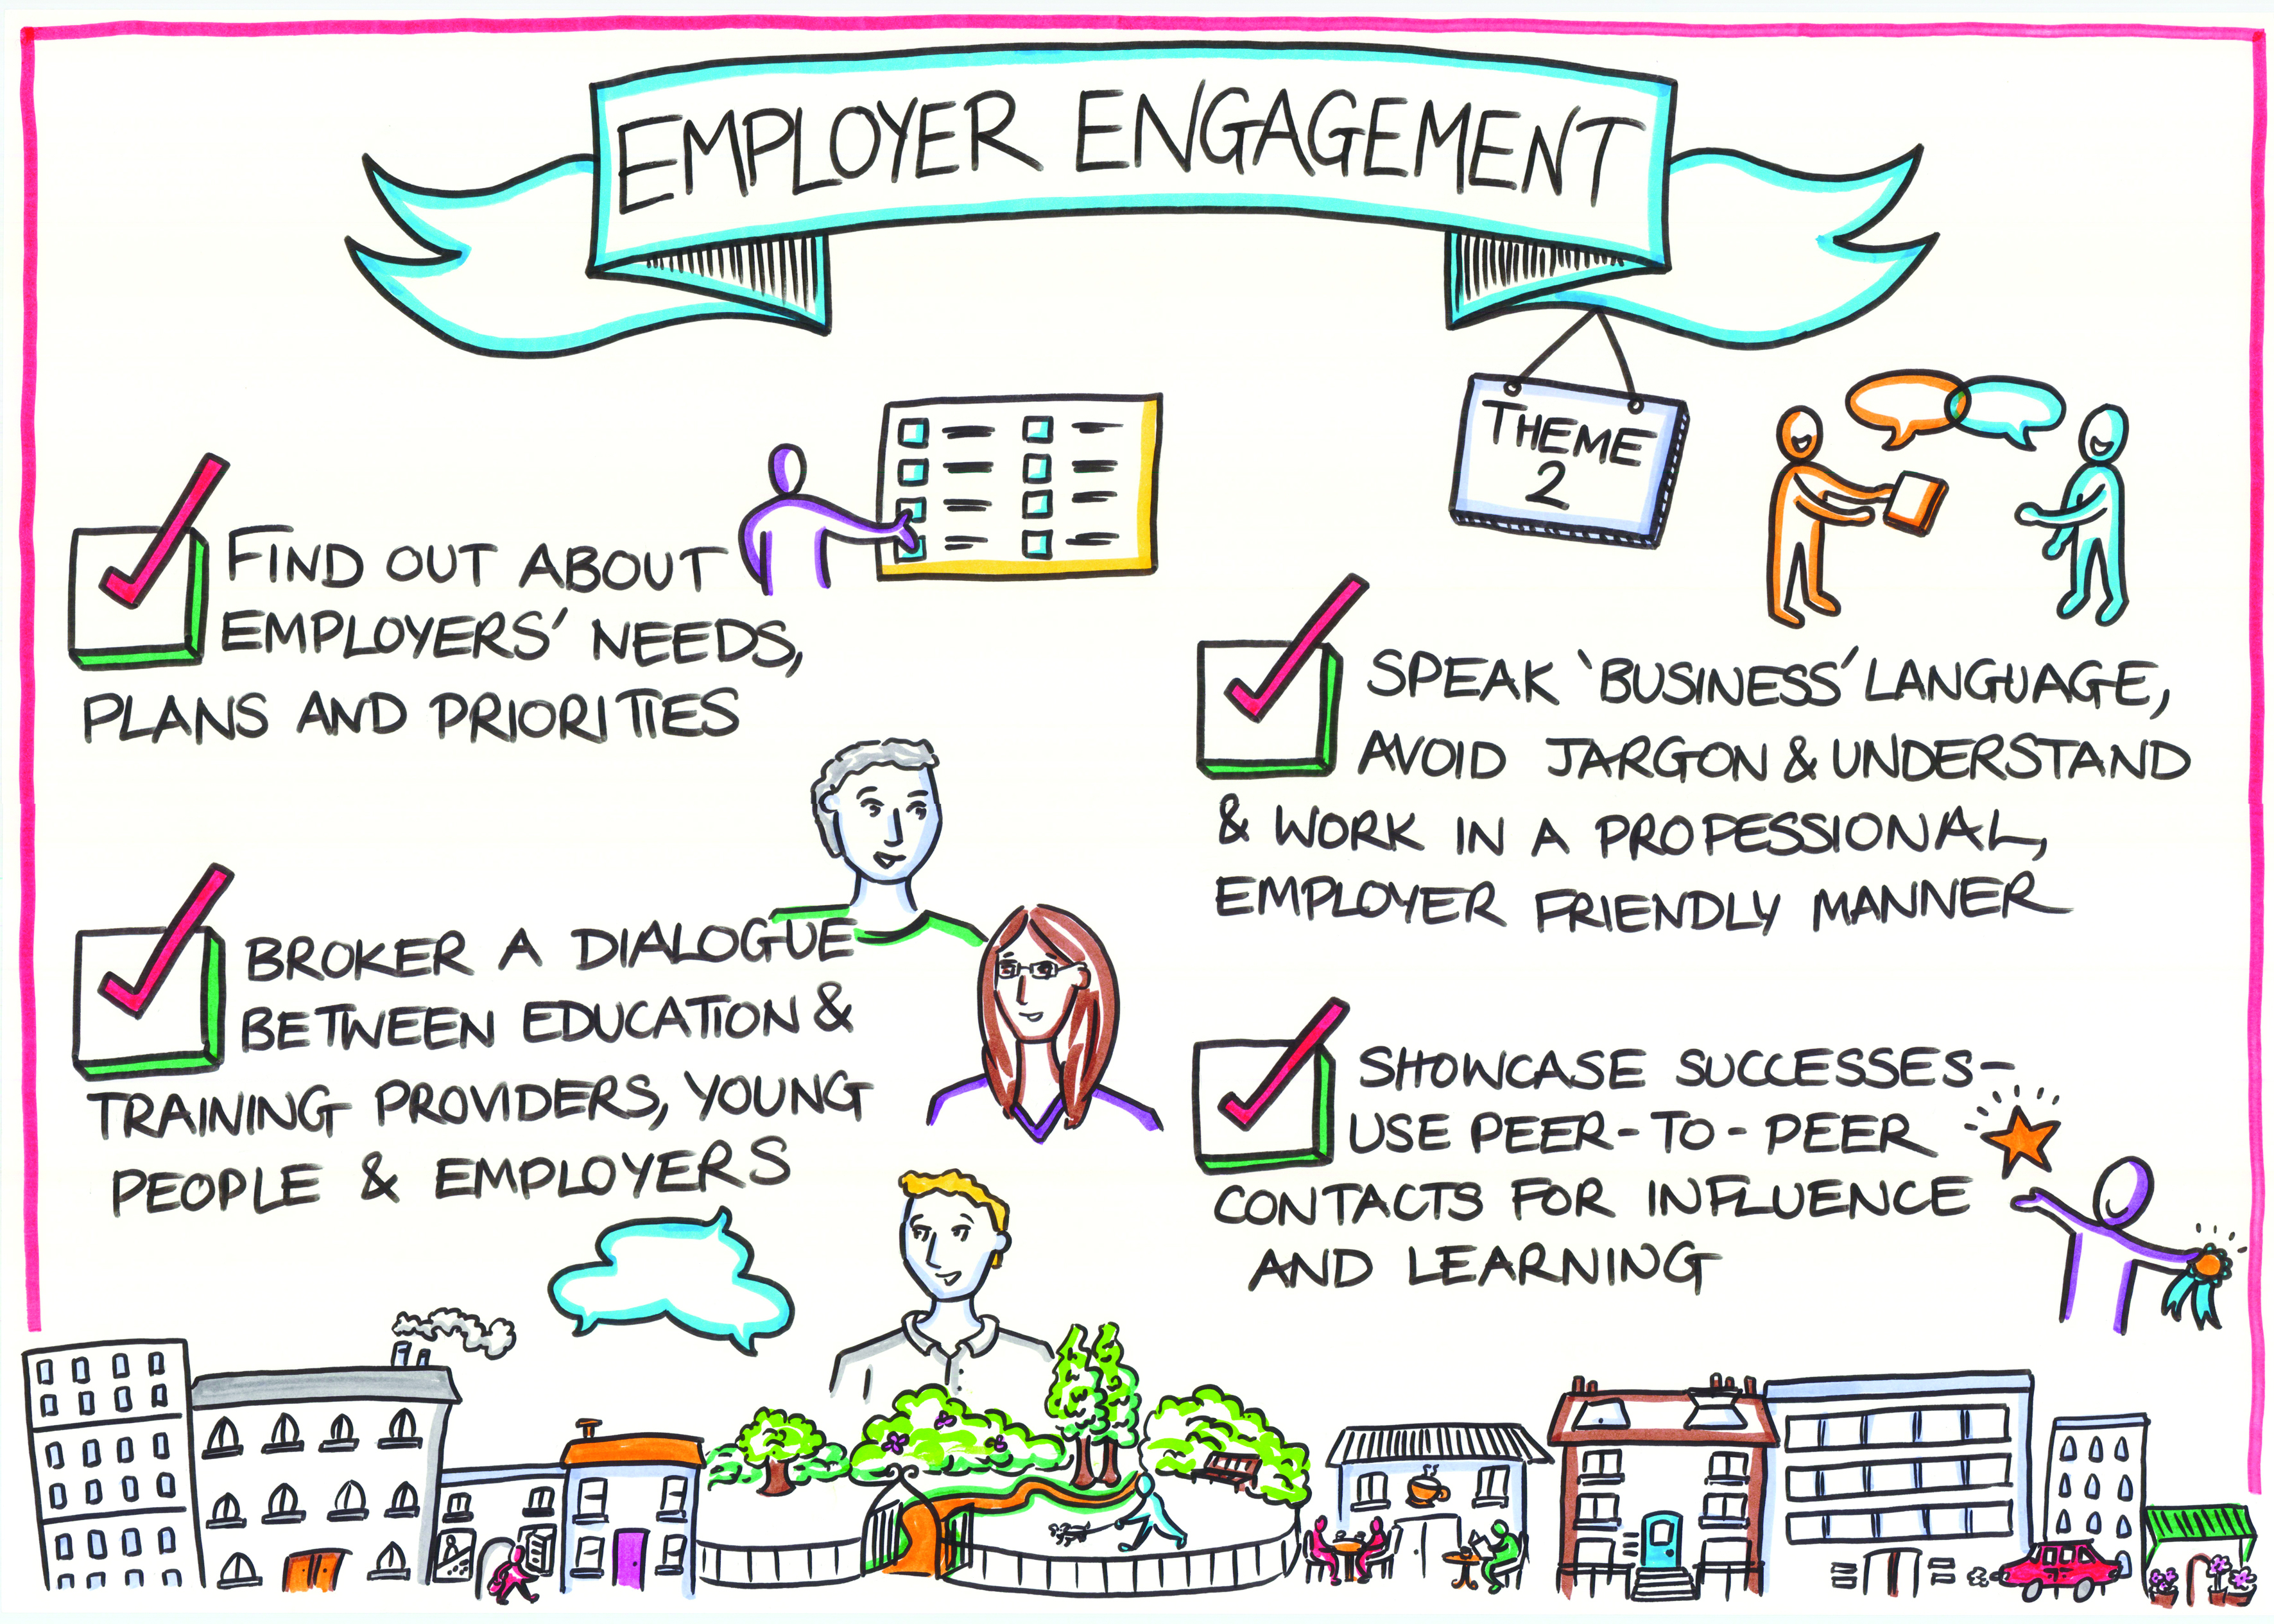 Engaging employers - Poster - Rachel Walsh